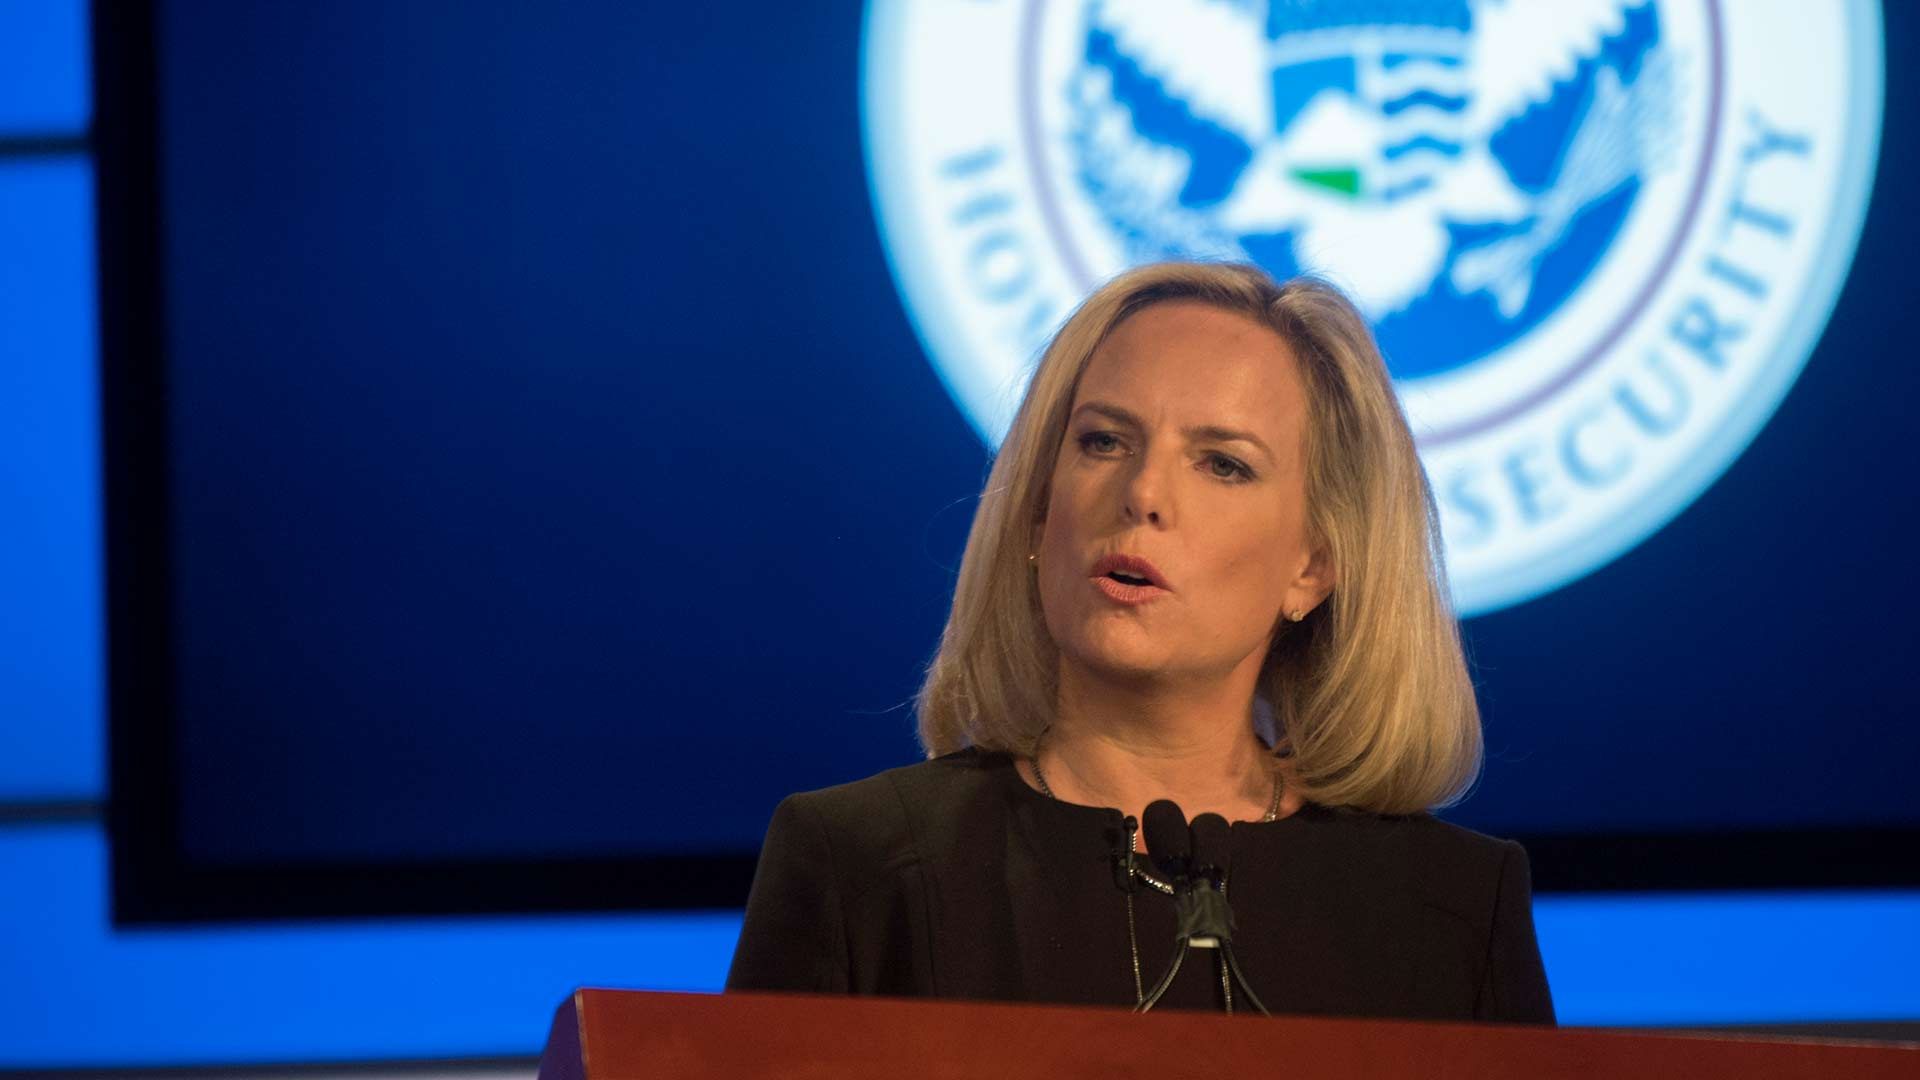 Kirstjen Nielsen speaking at George Washington University March 18, 2019. Nielsen announced she was stepping down as secretary of the Department of Homeland Security in April.